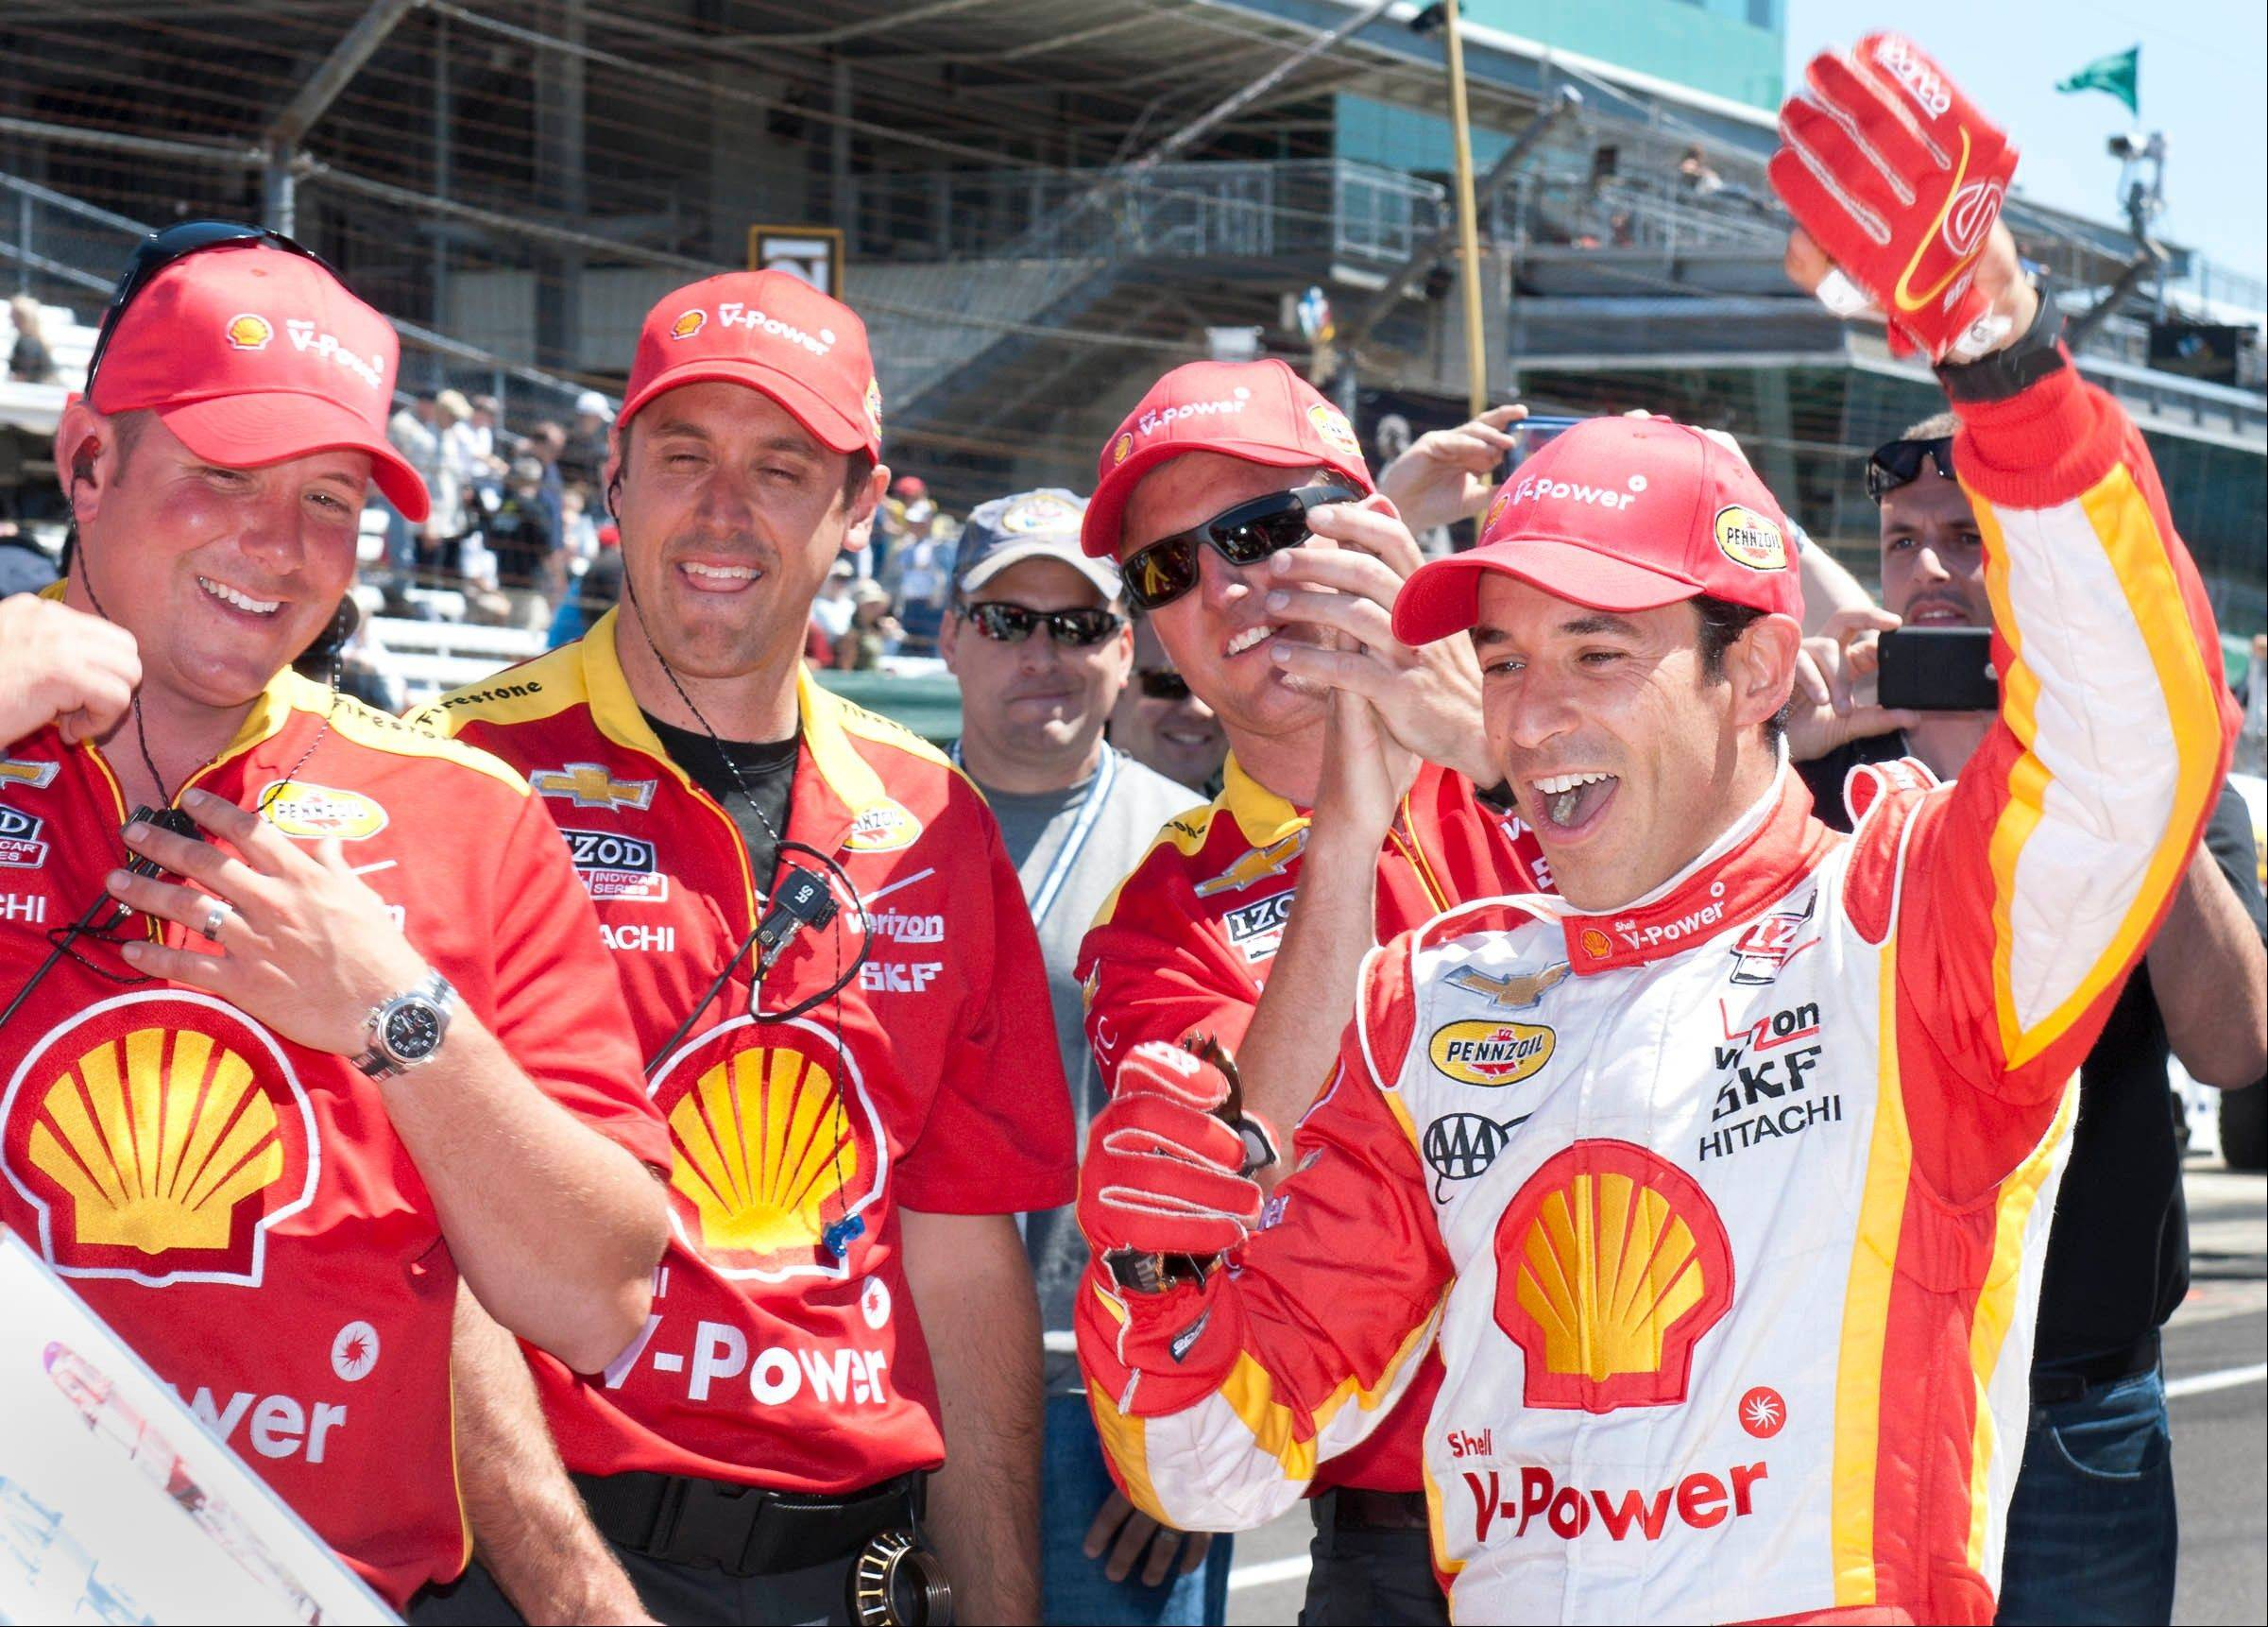 IndyCar driver Helio Castroneves, right, celebrates on the pit lane after winning the Pit Stop Challenge for a record sixth time at the Indianapolis Motor Speedway, Friday, May 24, 2013. (AP Photo/The Indianapolis Star, Gary Mook) NO SALES.